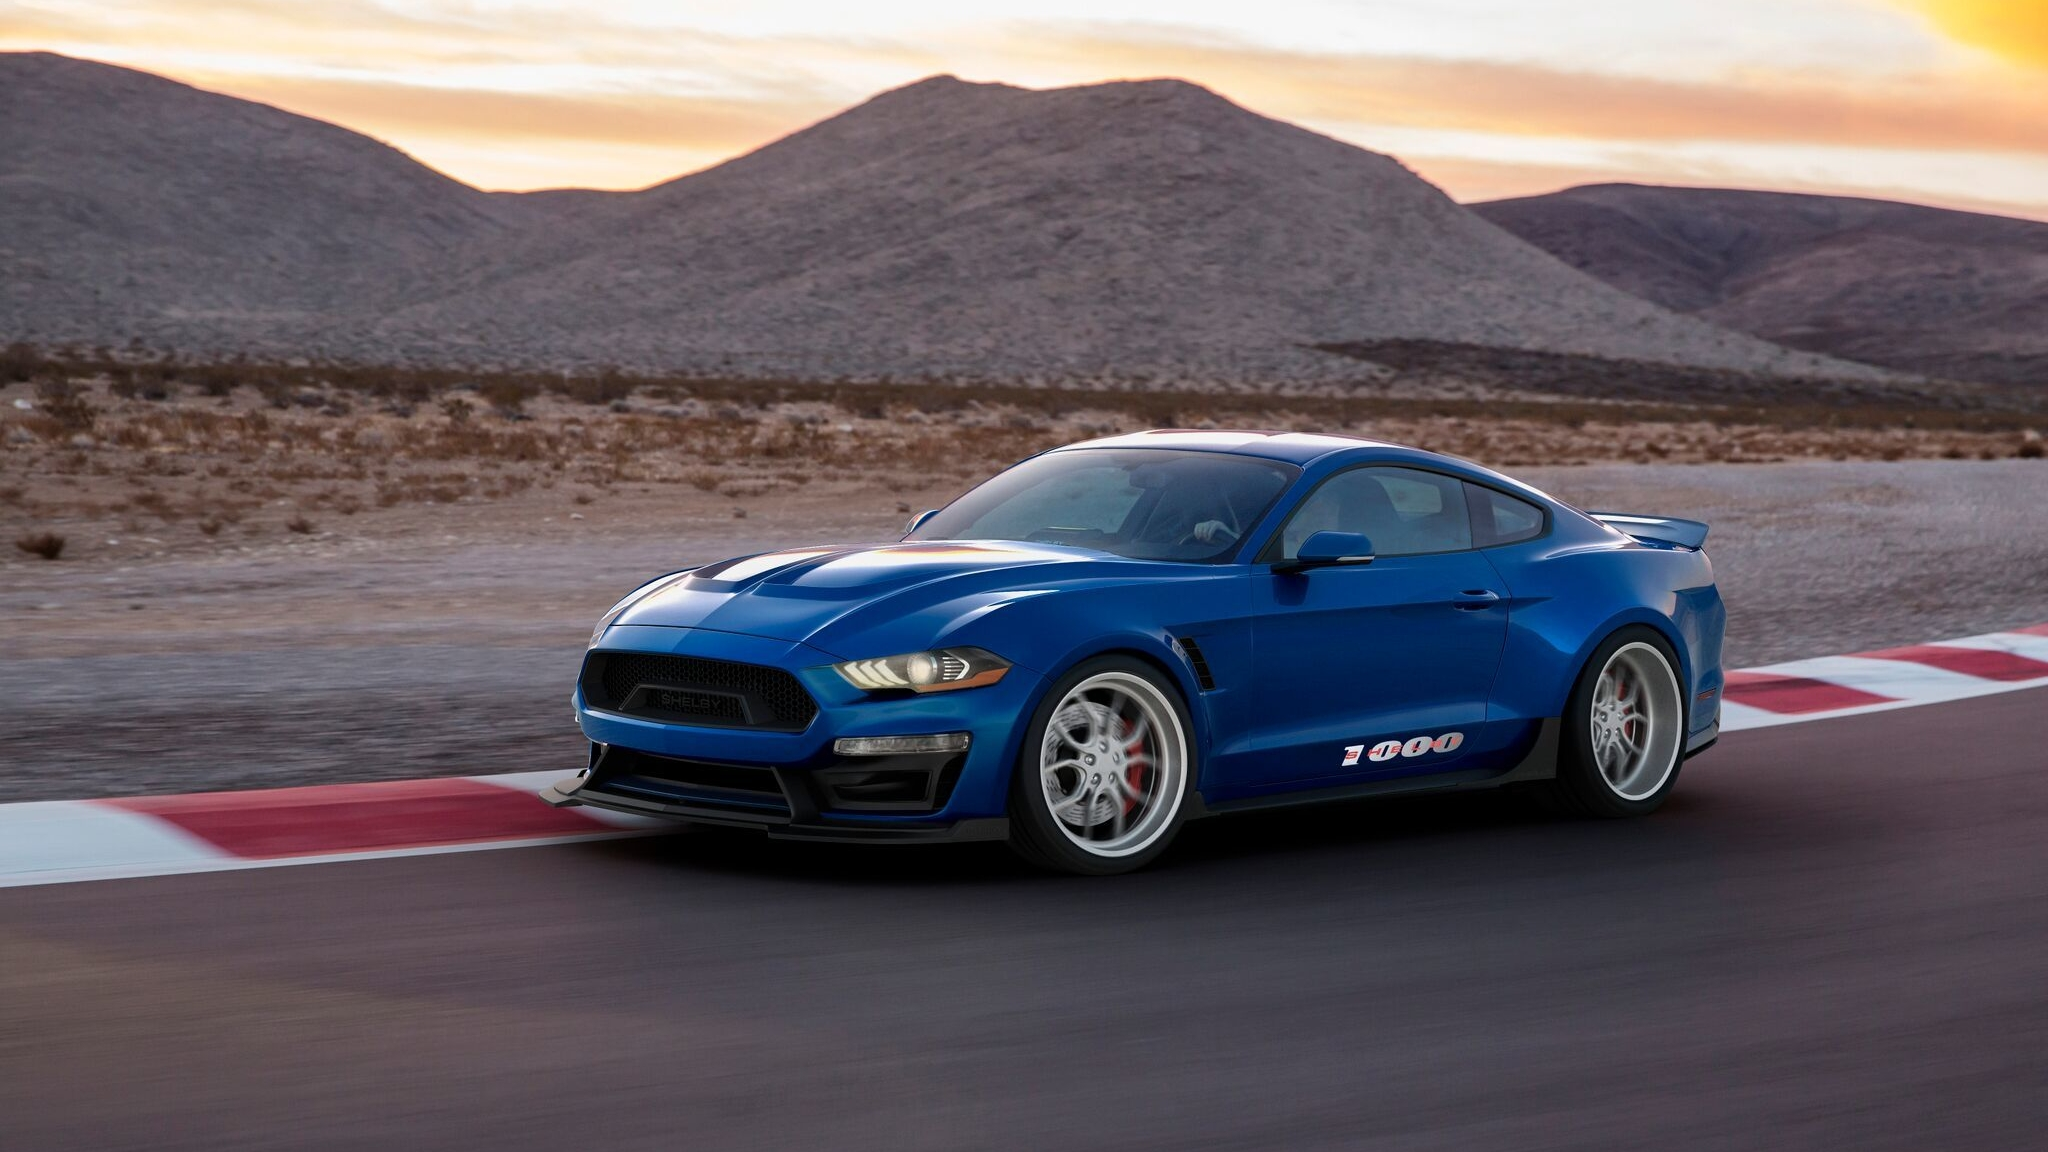 2018 Ford Shelby Mustang 1000 Pictures Photos Wallpapers Top Speed